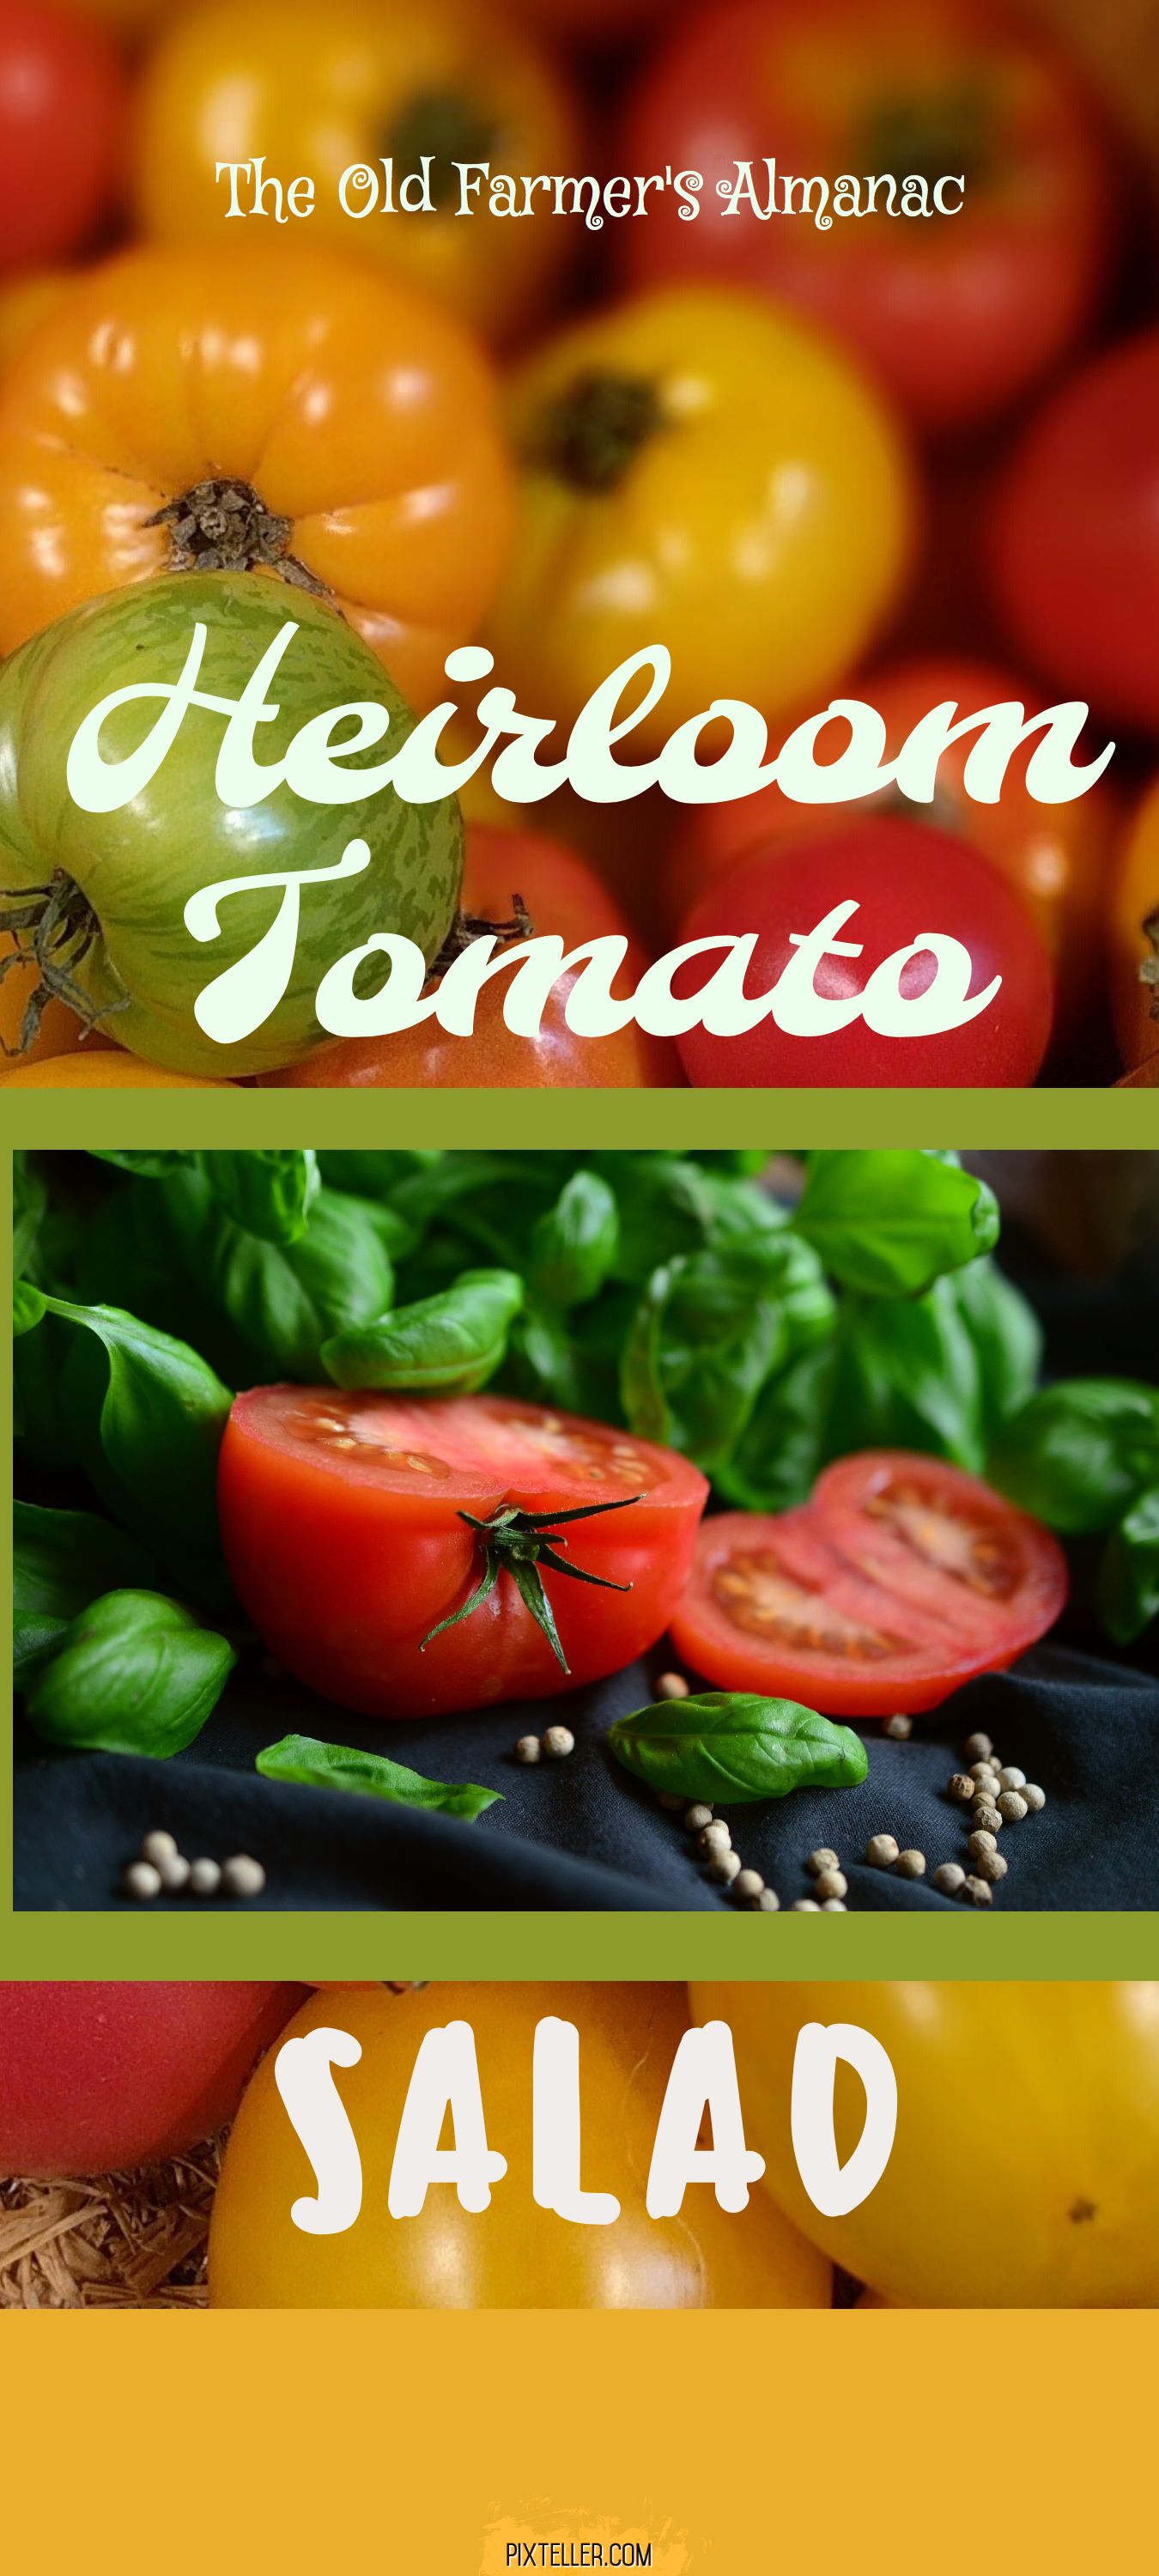 Natural,                Foods,                Vegetable,                Local,                Food,                Produce,                Black,                Yellow,                Red,                 Free Image